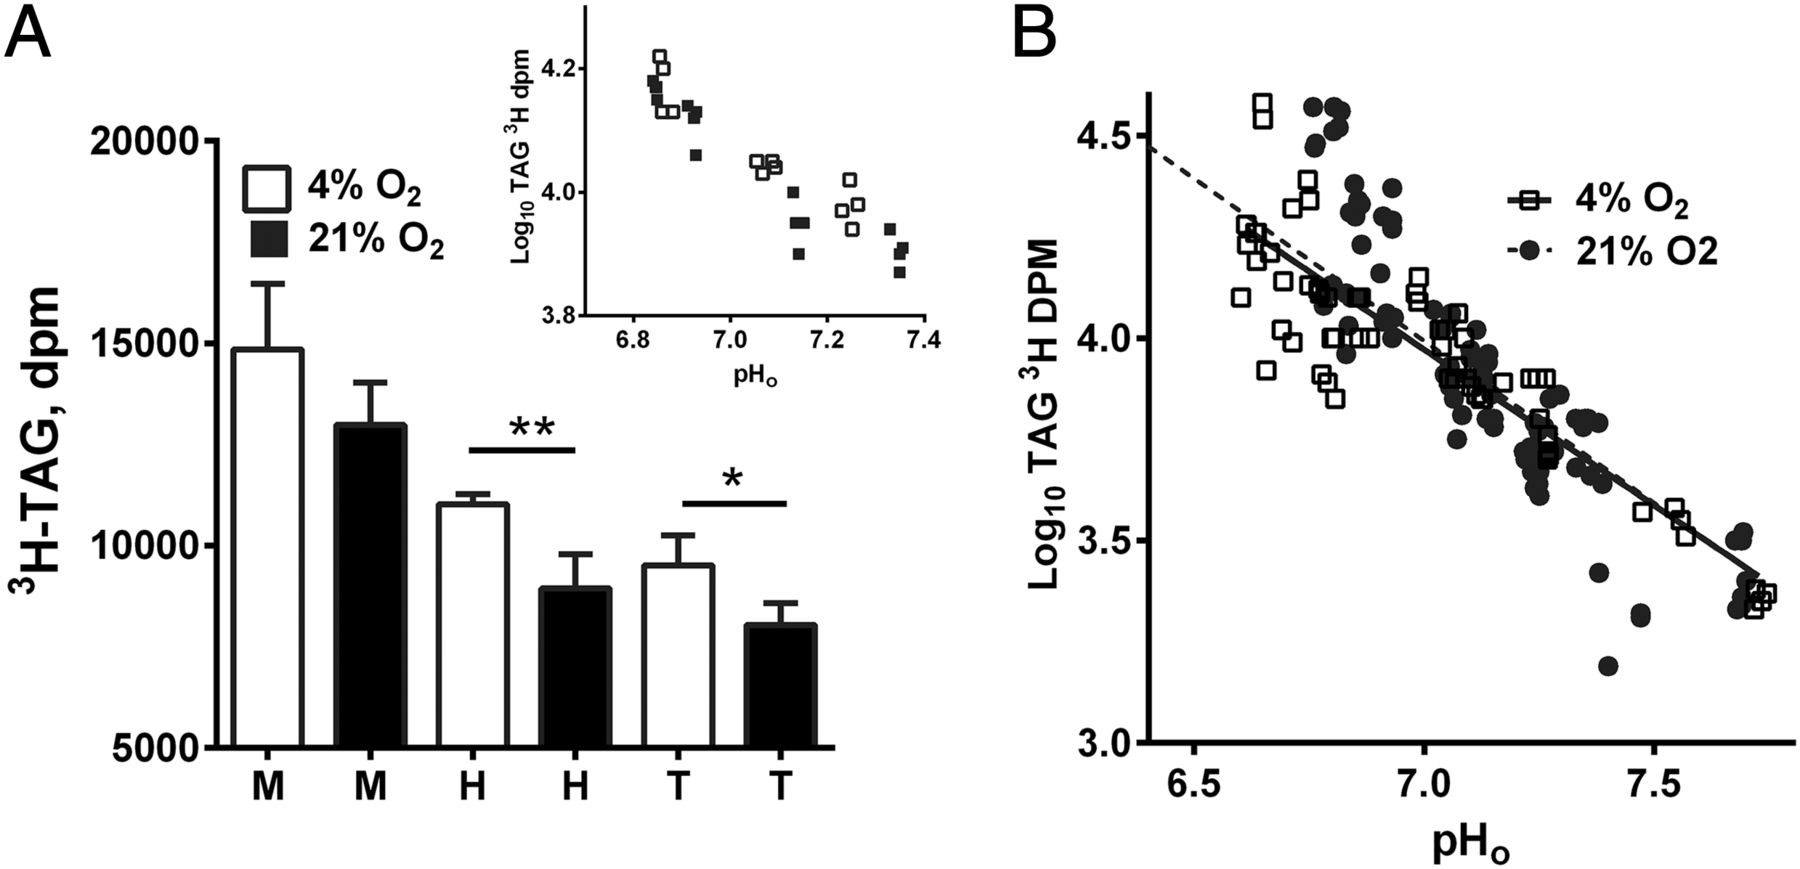 Prolonged triglyceride storage in macrophages pho trumps po2 and download figure pooptronica Gallery